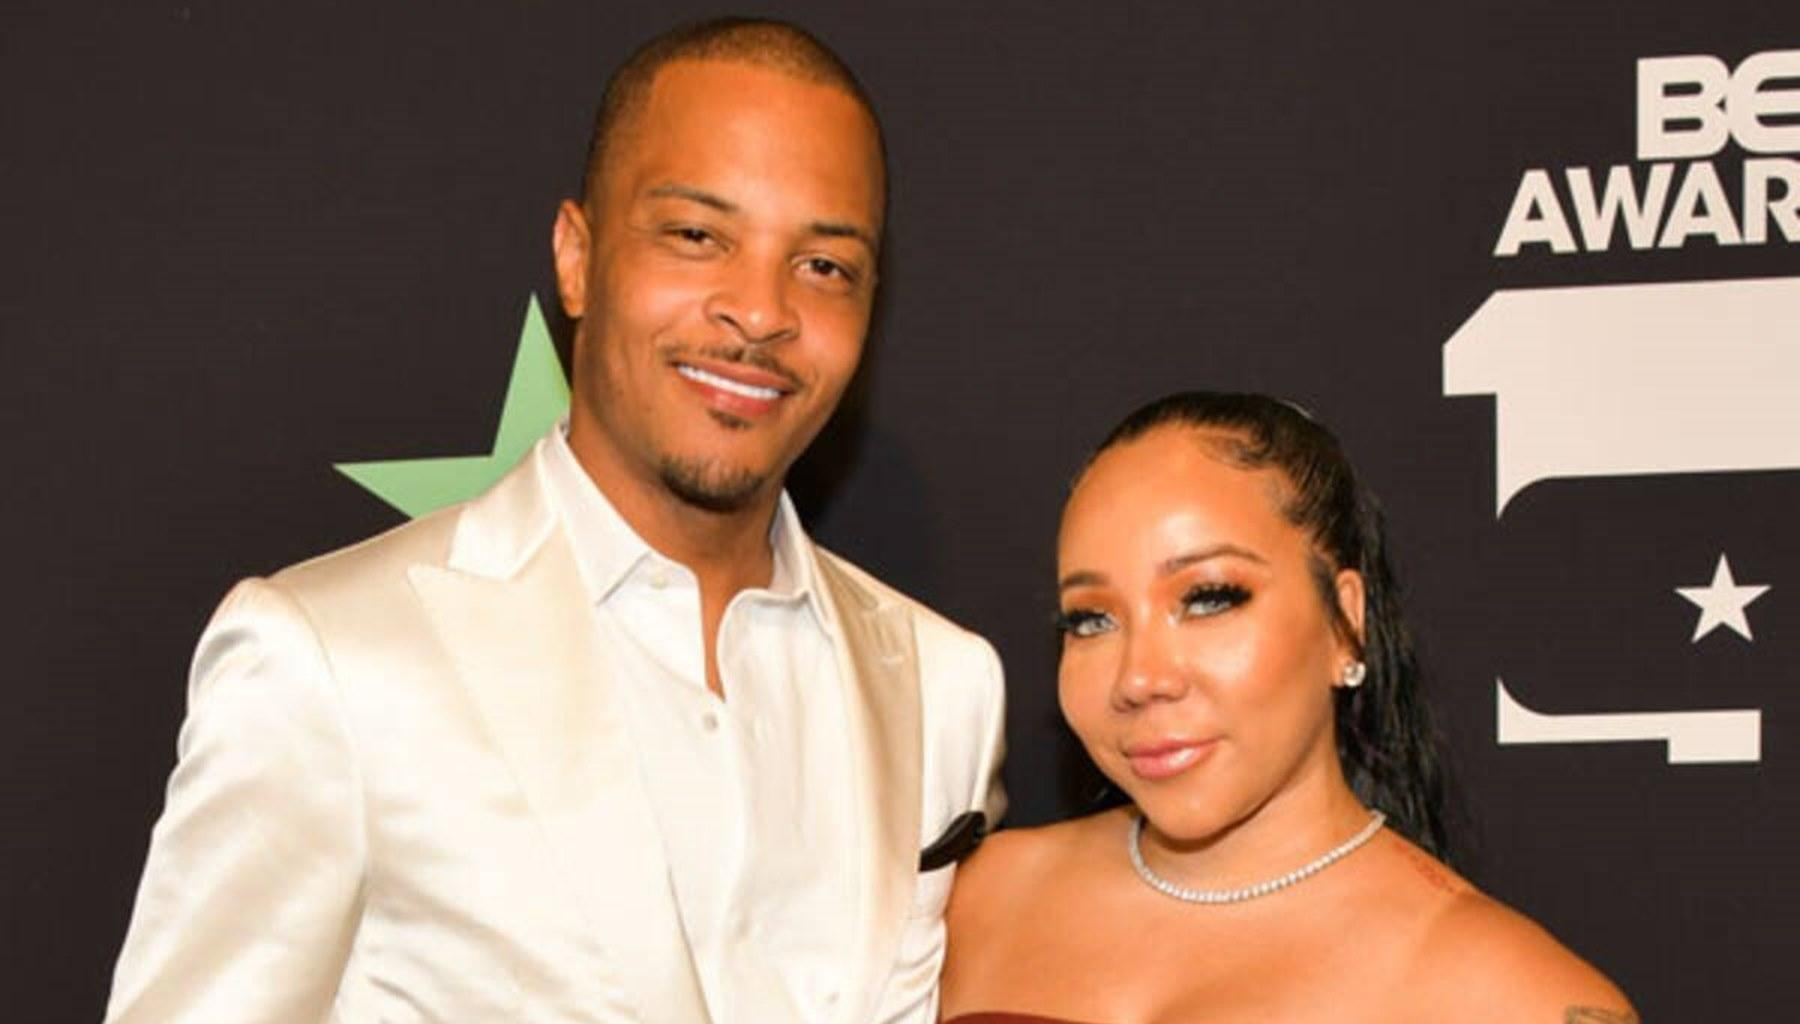 T.I. Confronts Tiny Harris Over This Swagalicious Photo -- Xscape Singer Defends Herself